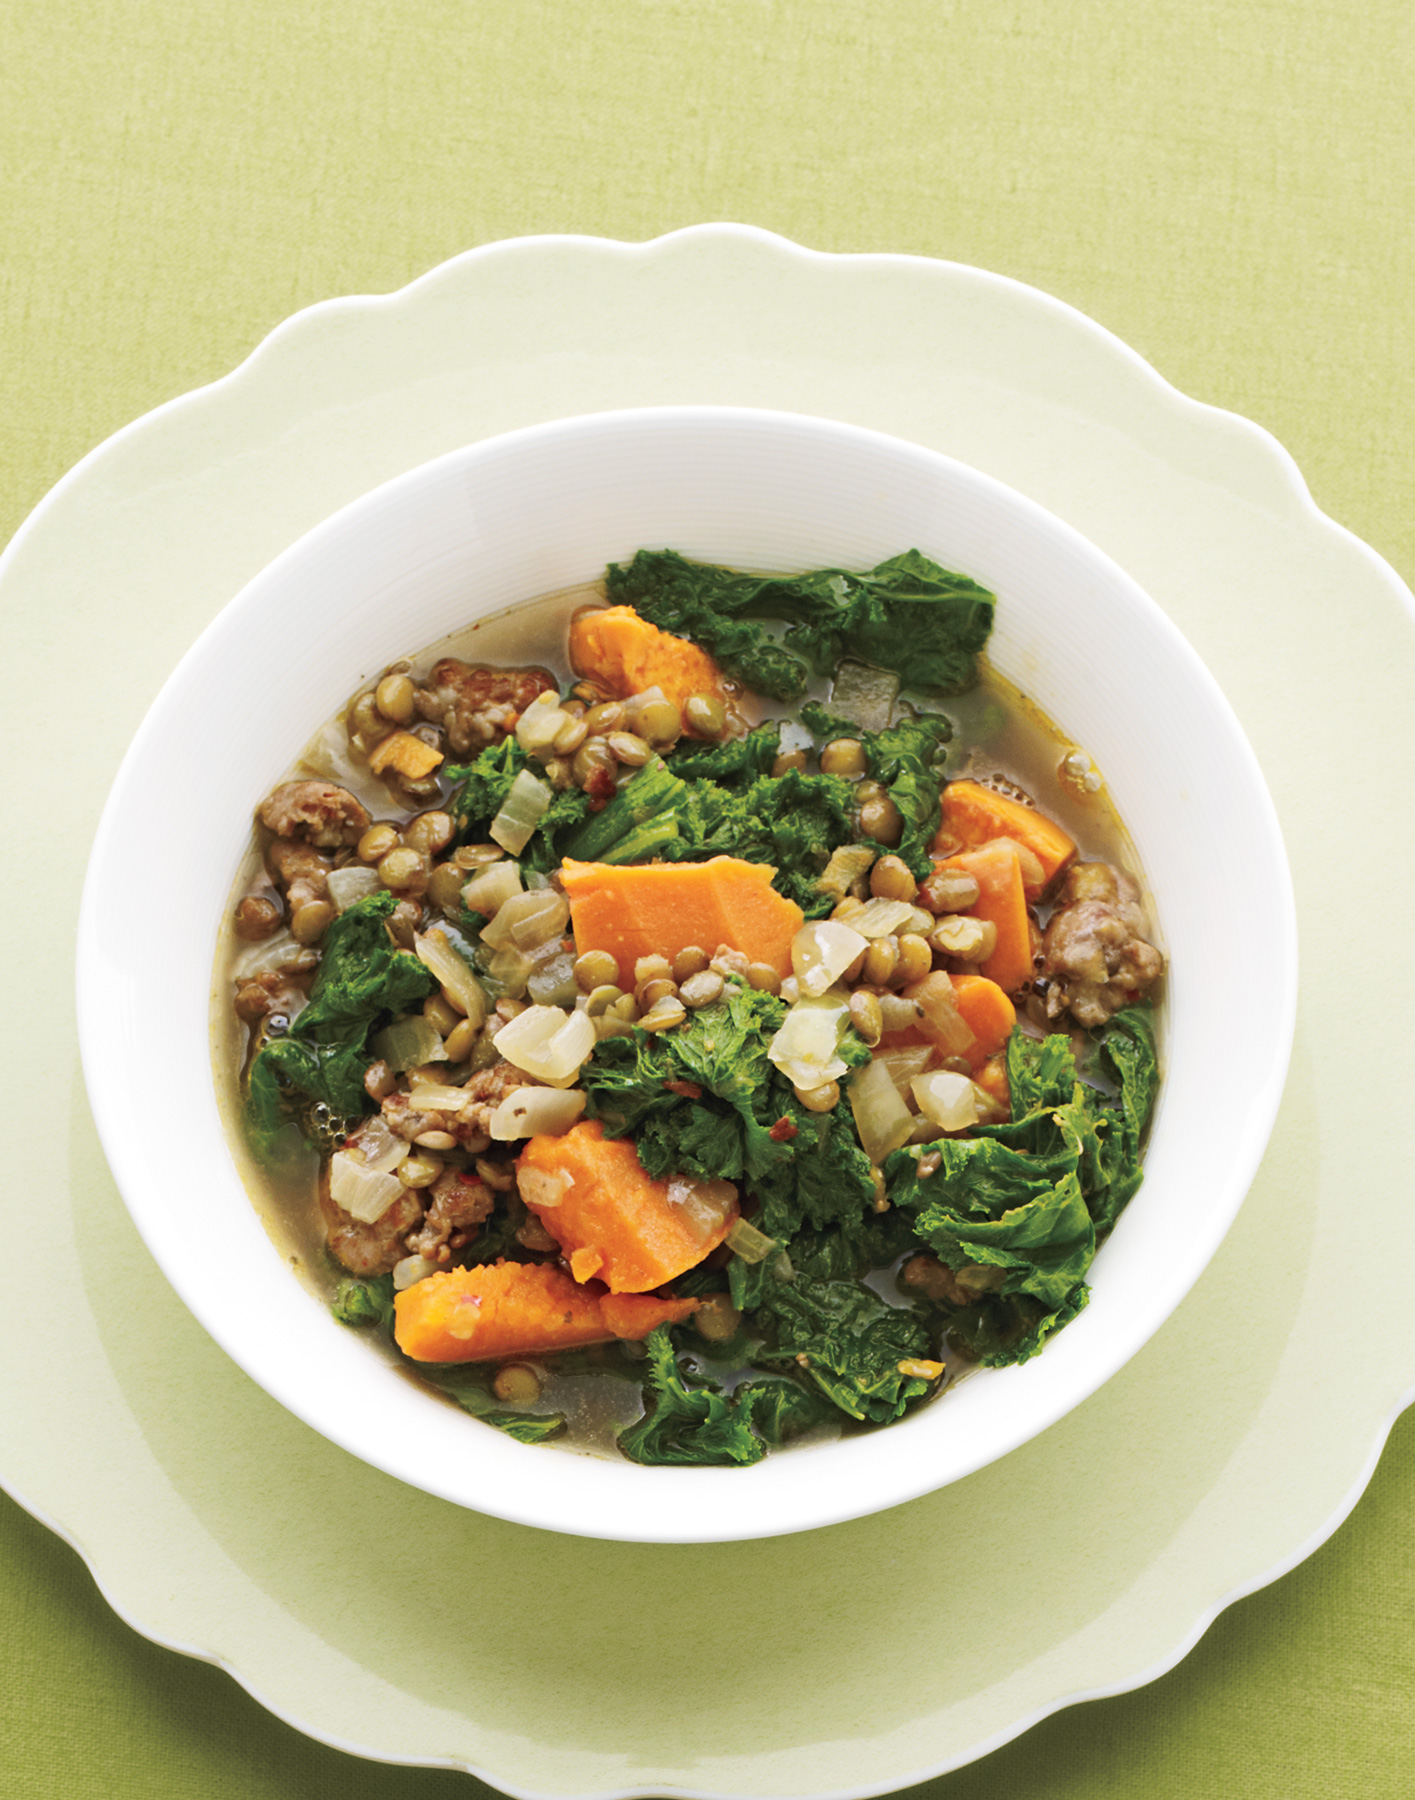 Lentil Stew With Mustard Greens and Sausage